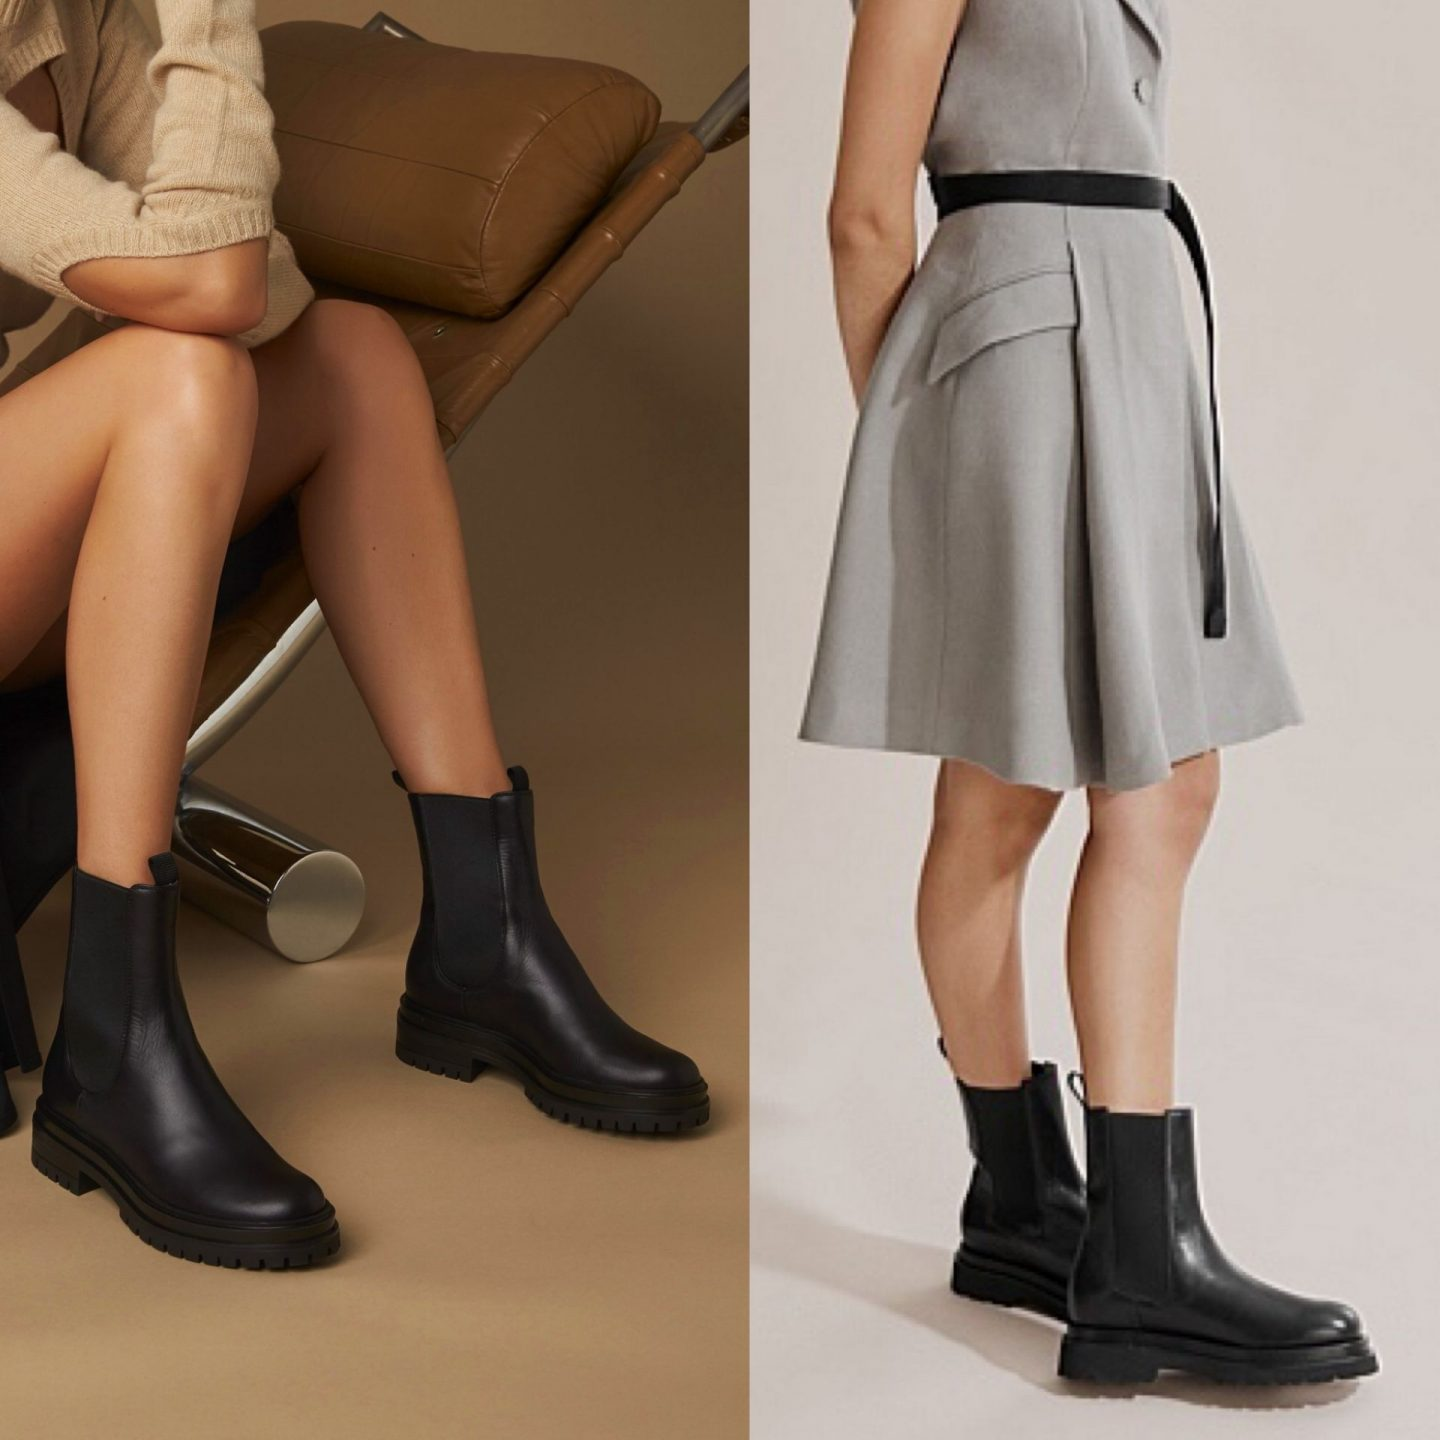 gianvito rossi chester boot and shoe dupe option in blog post about designer shoe dupes